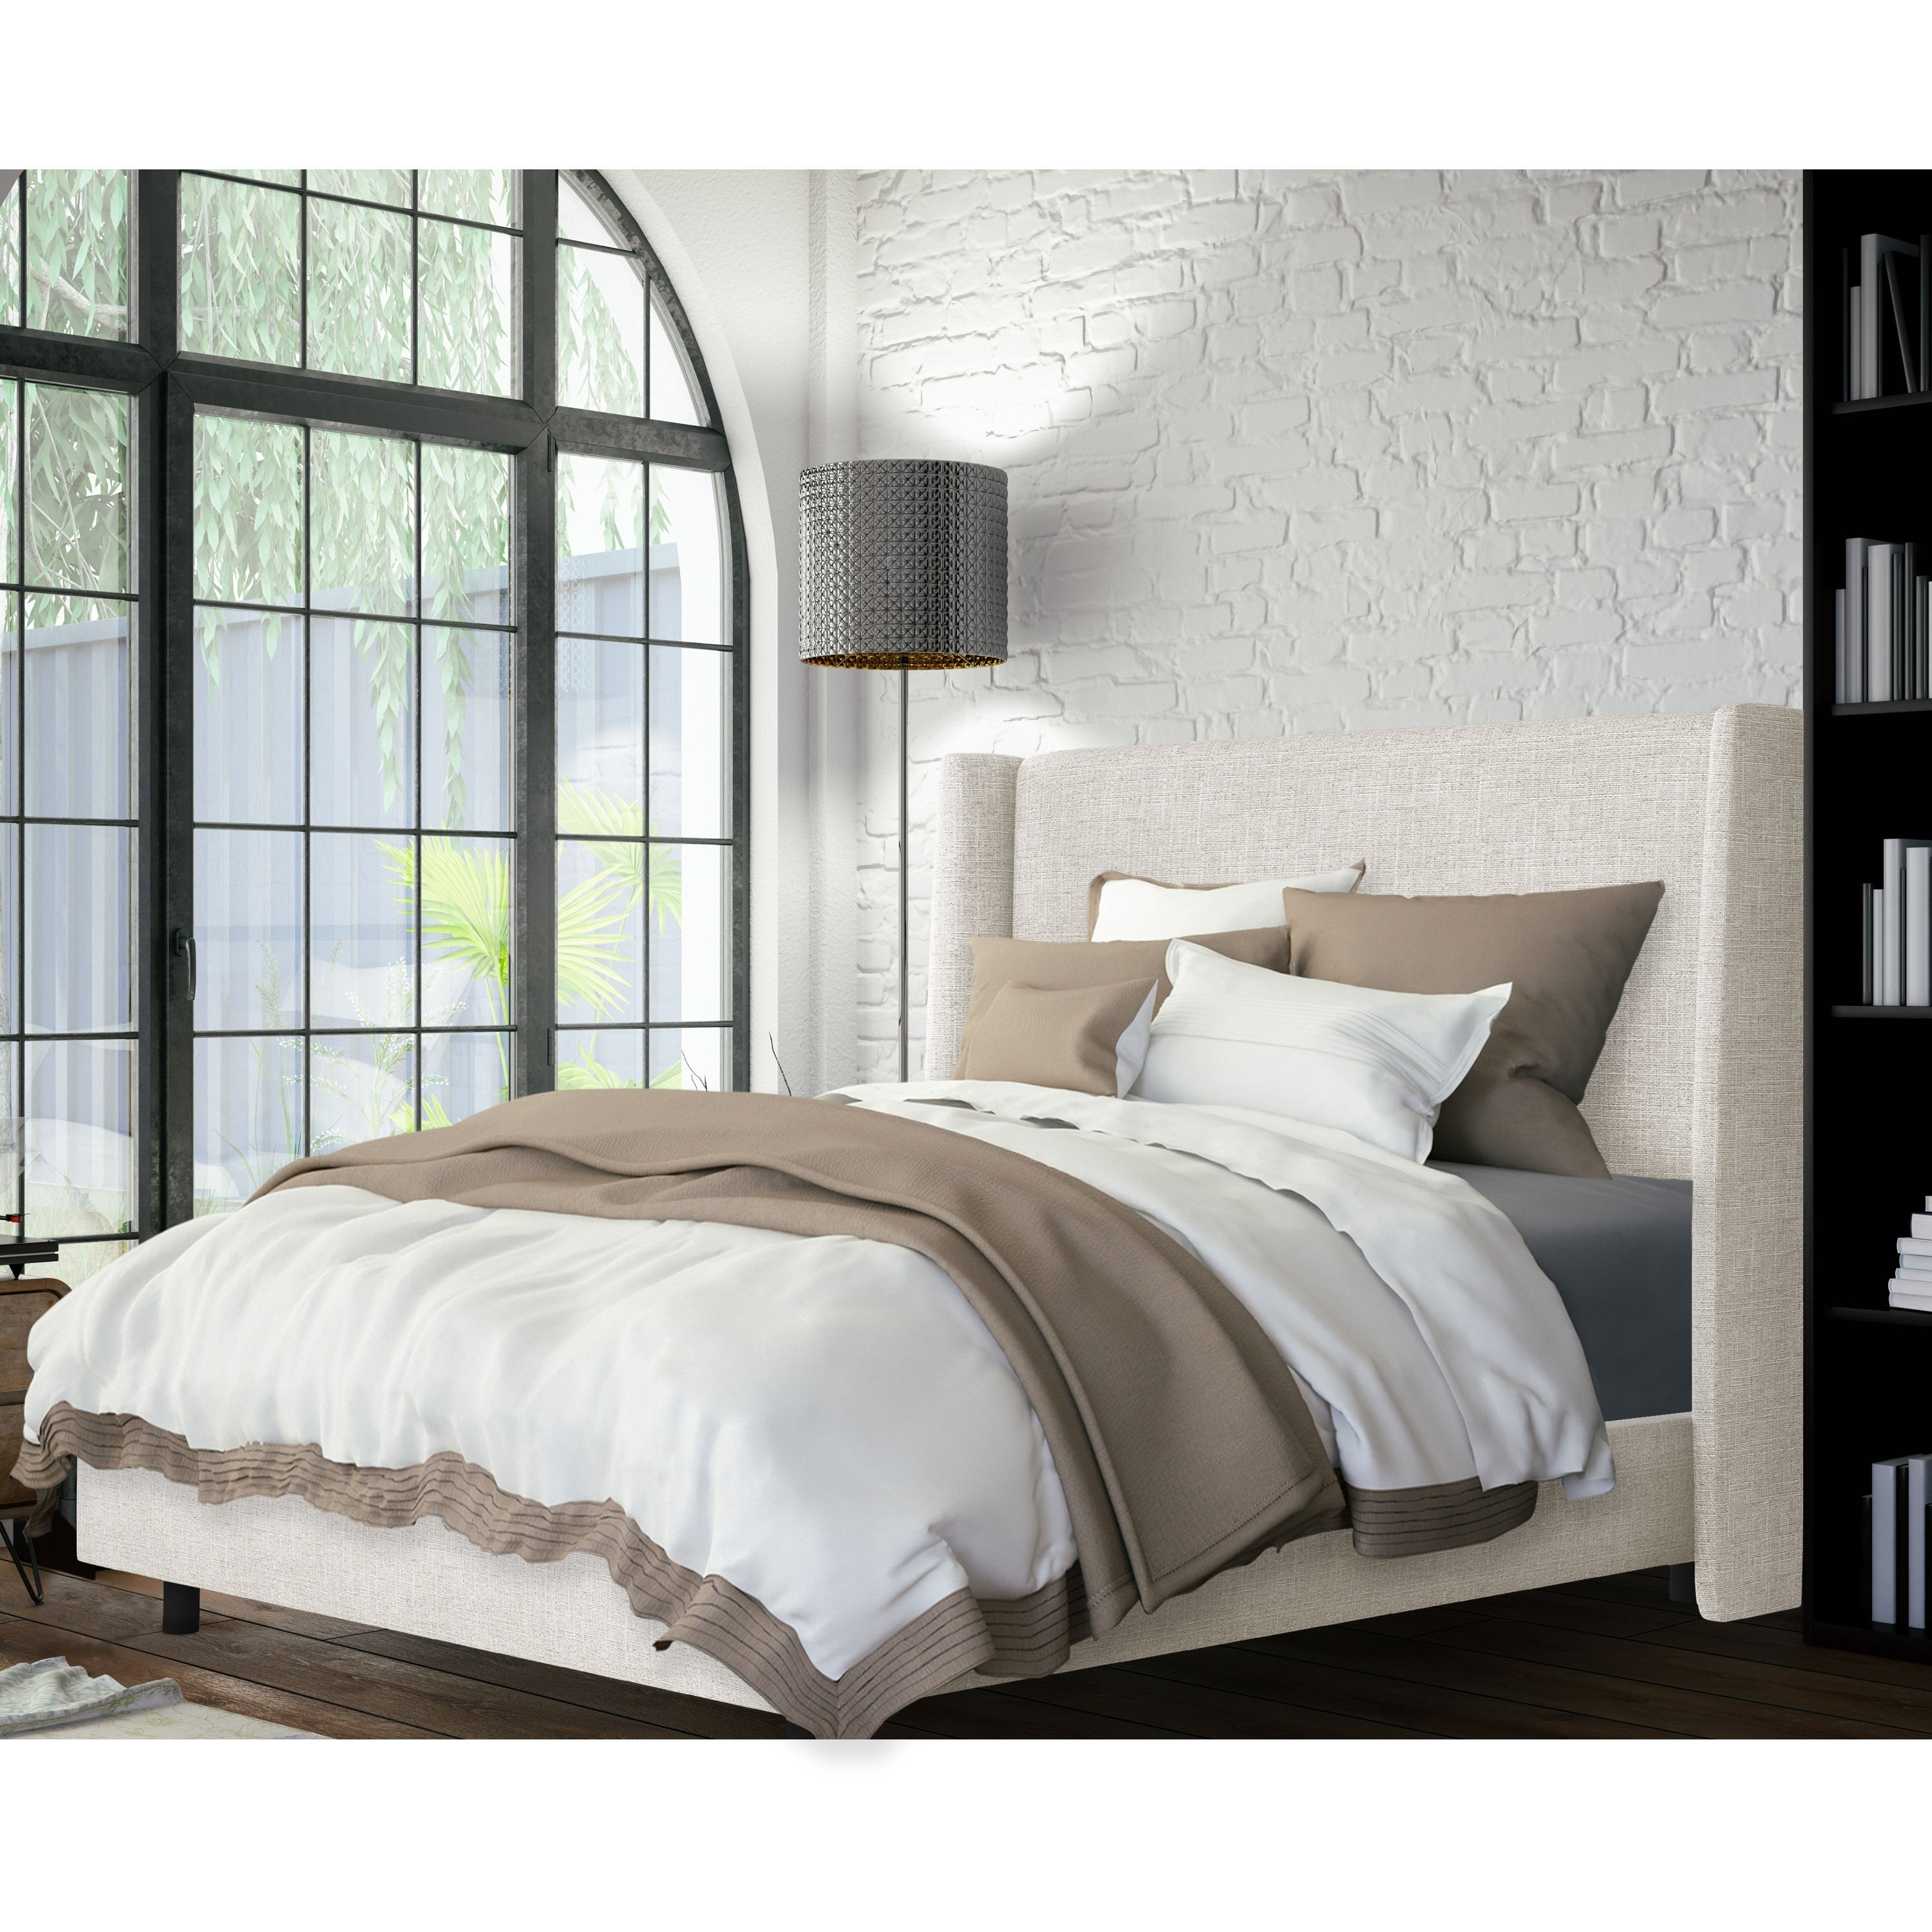 Shop Skyline Furniture Wingback Bed In Zuma White Free Shipping